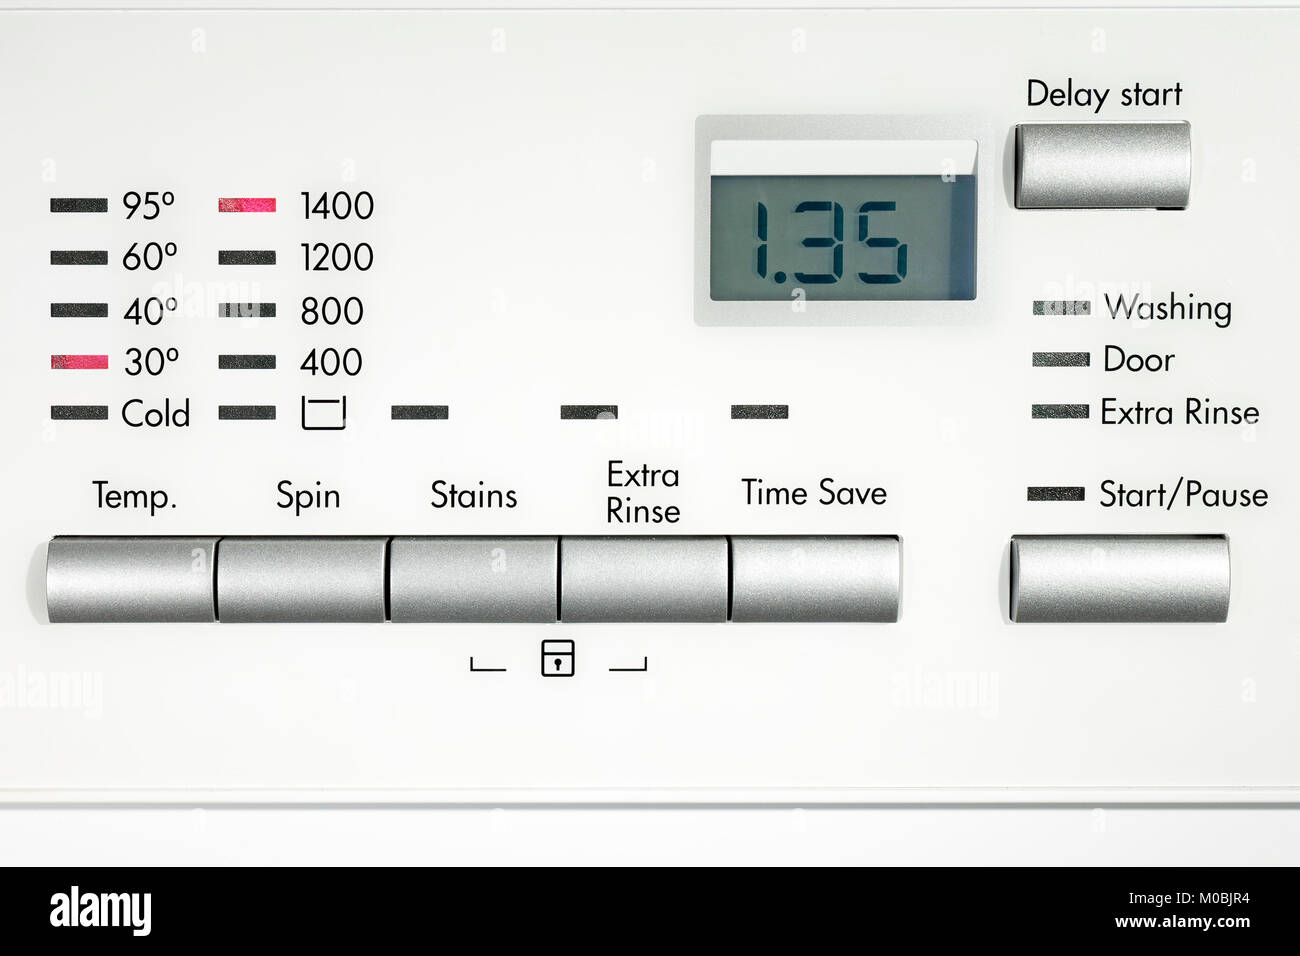 Washing machine set to 30 degree wash and 1400RPM spin speed 1hr 35min 1.35hrs - Stock Image